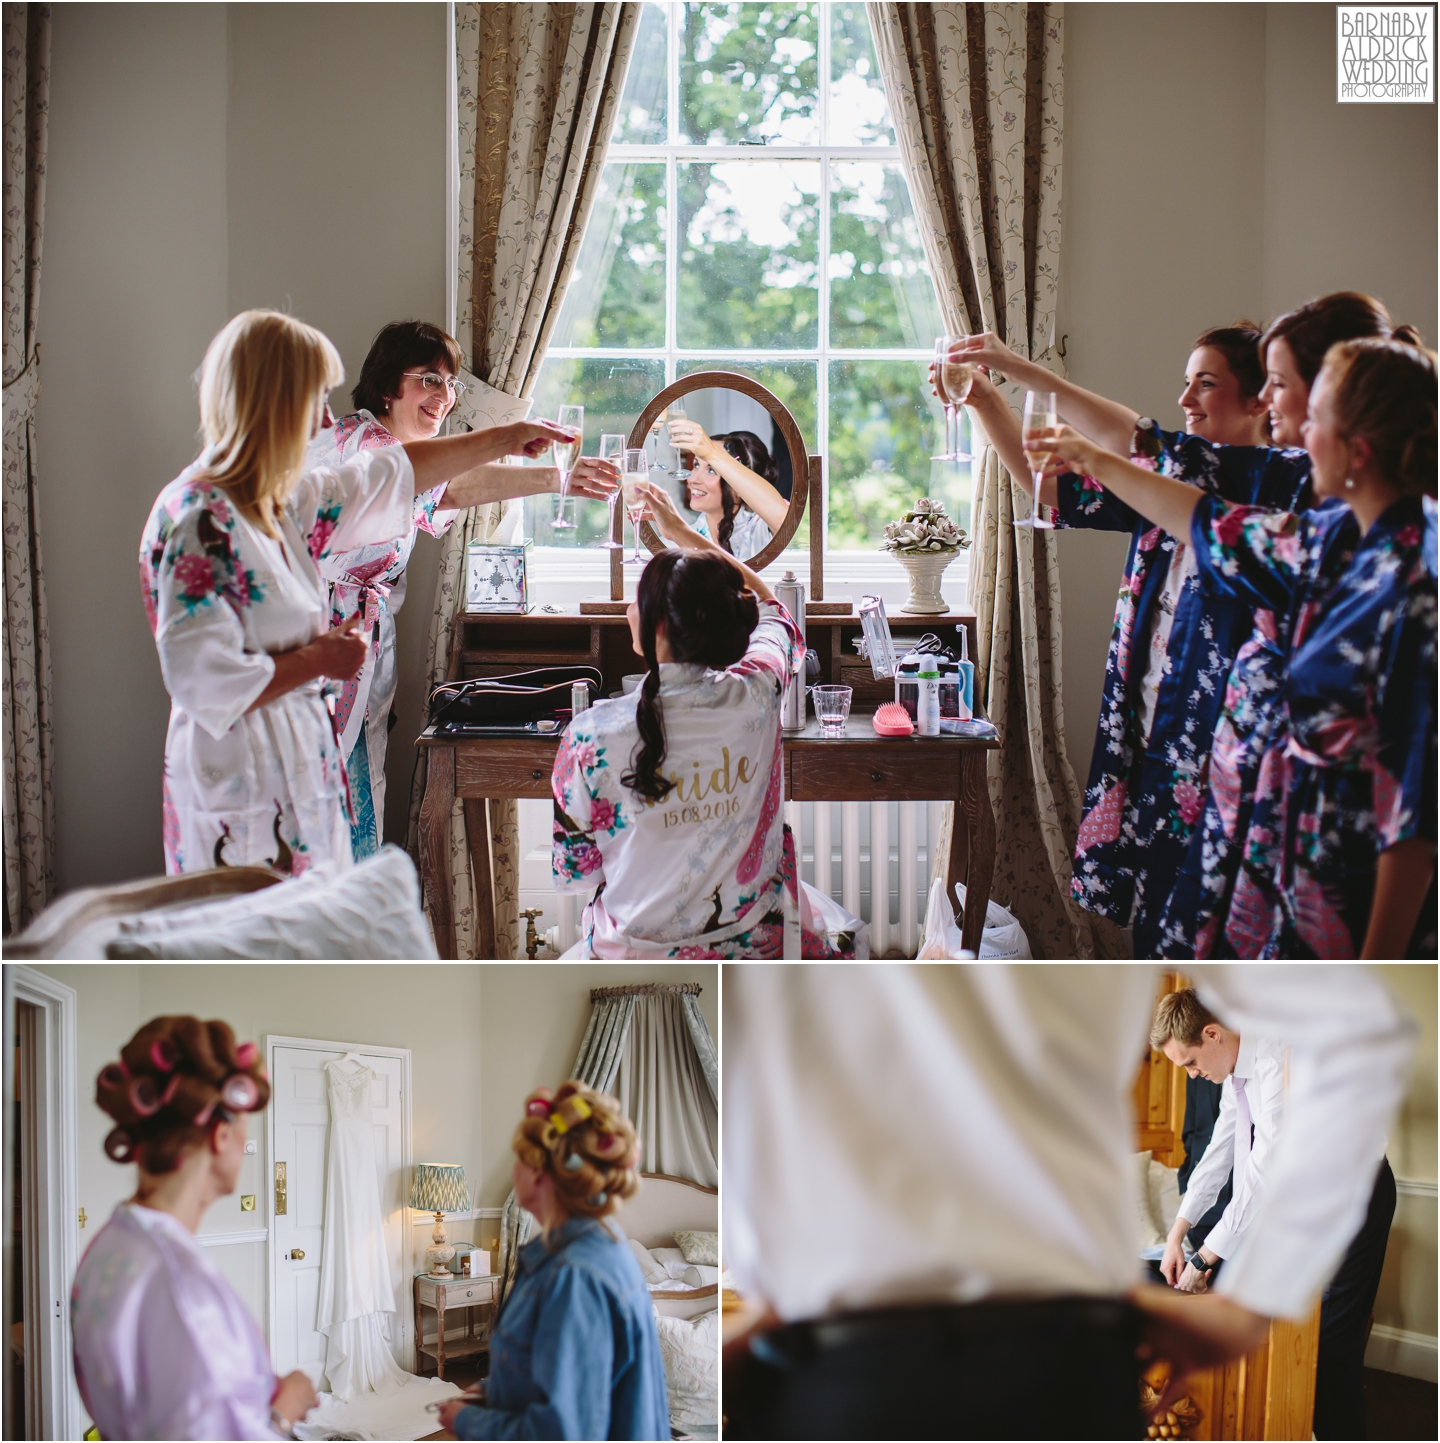 Wedding Photos At Middleton Lodge Near Richmond: Ideas